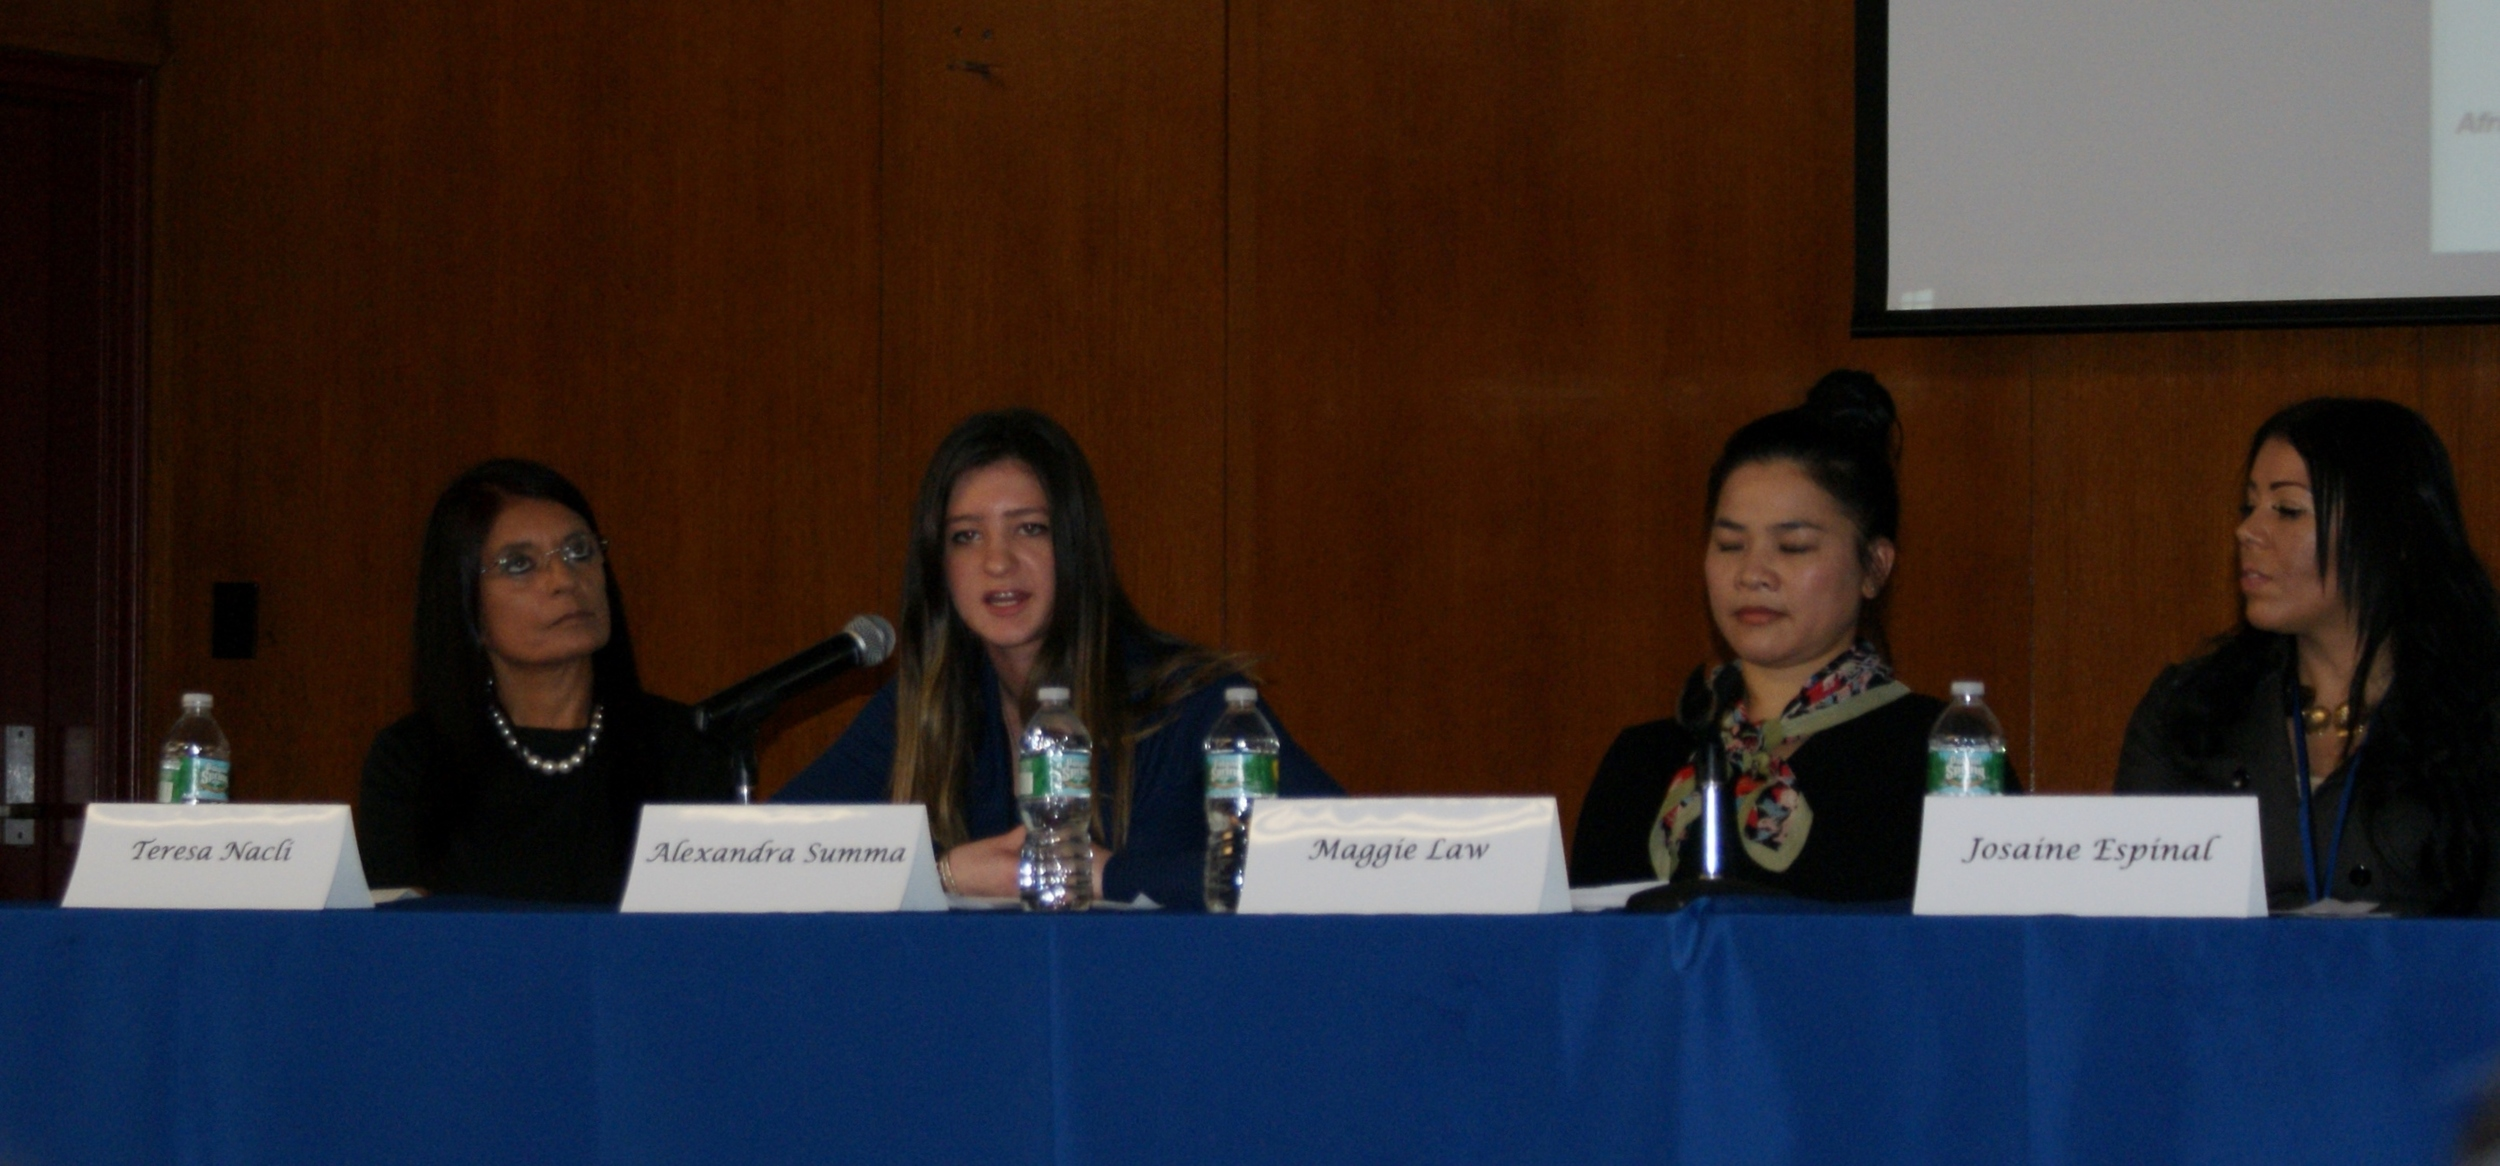 In the Hall of Social Justice with other panel members responding to a question on Women's Empowerment